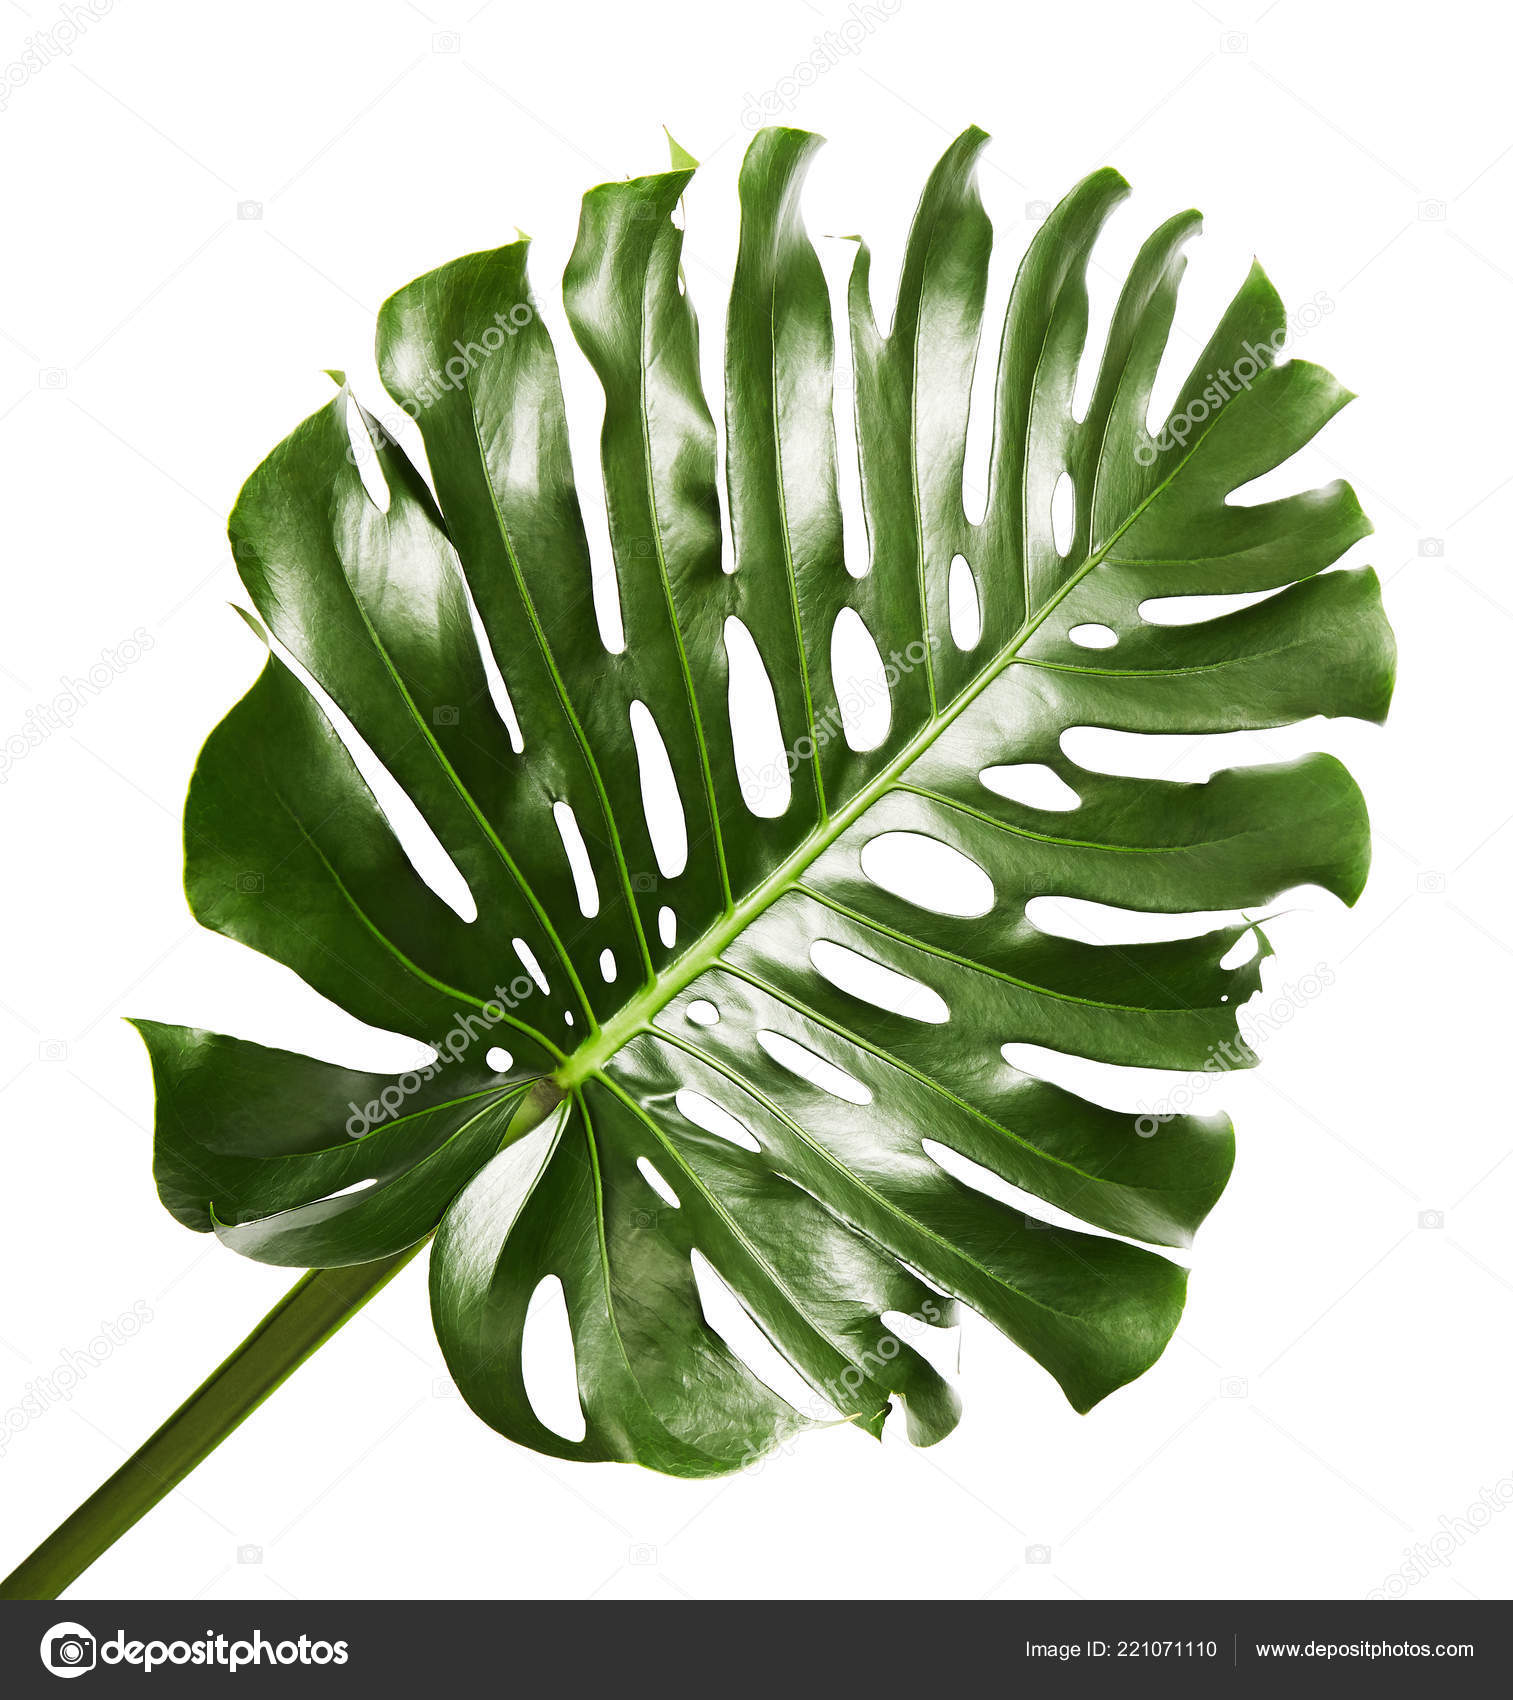 Monstera Deliciosa Leaf Swiss Cheese Plant Tropical Foliage Isolated White Stock Photo Image By C Dewins 221071110